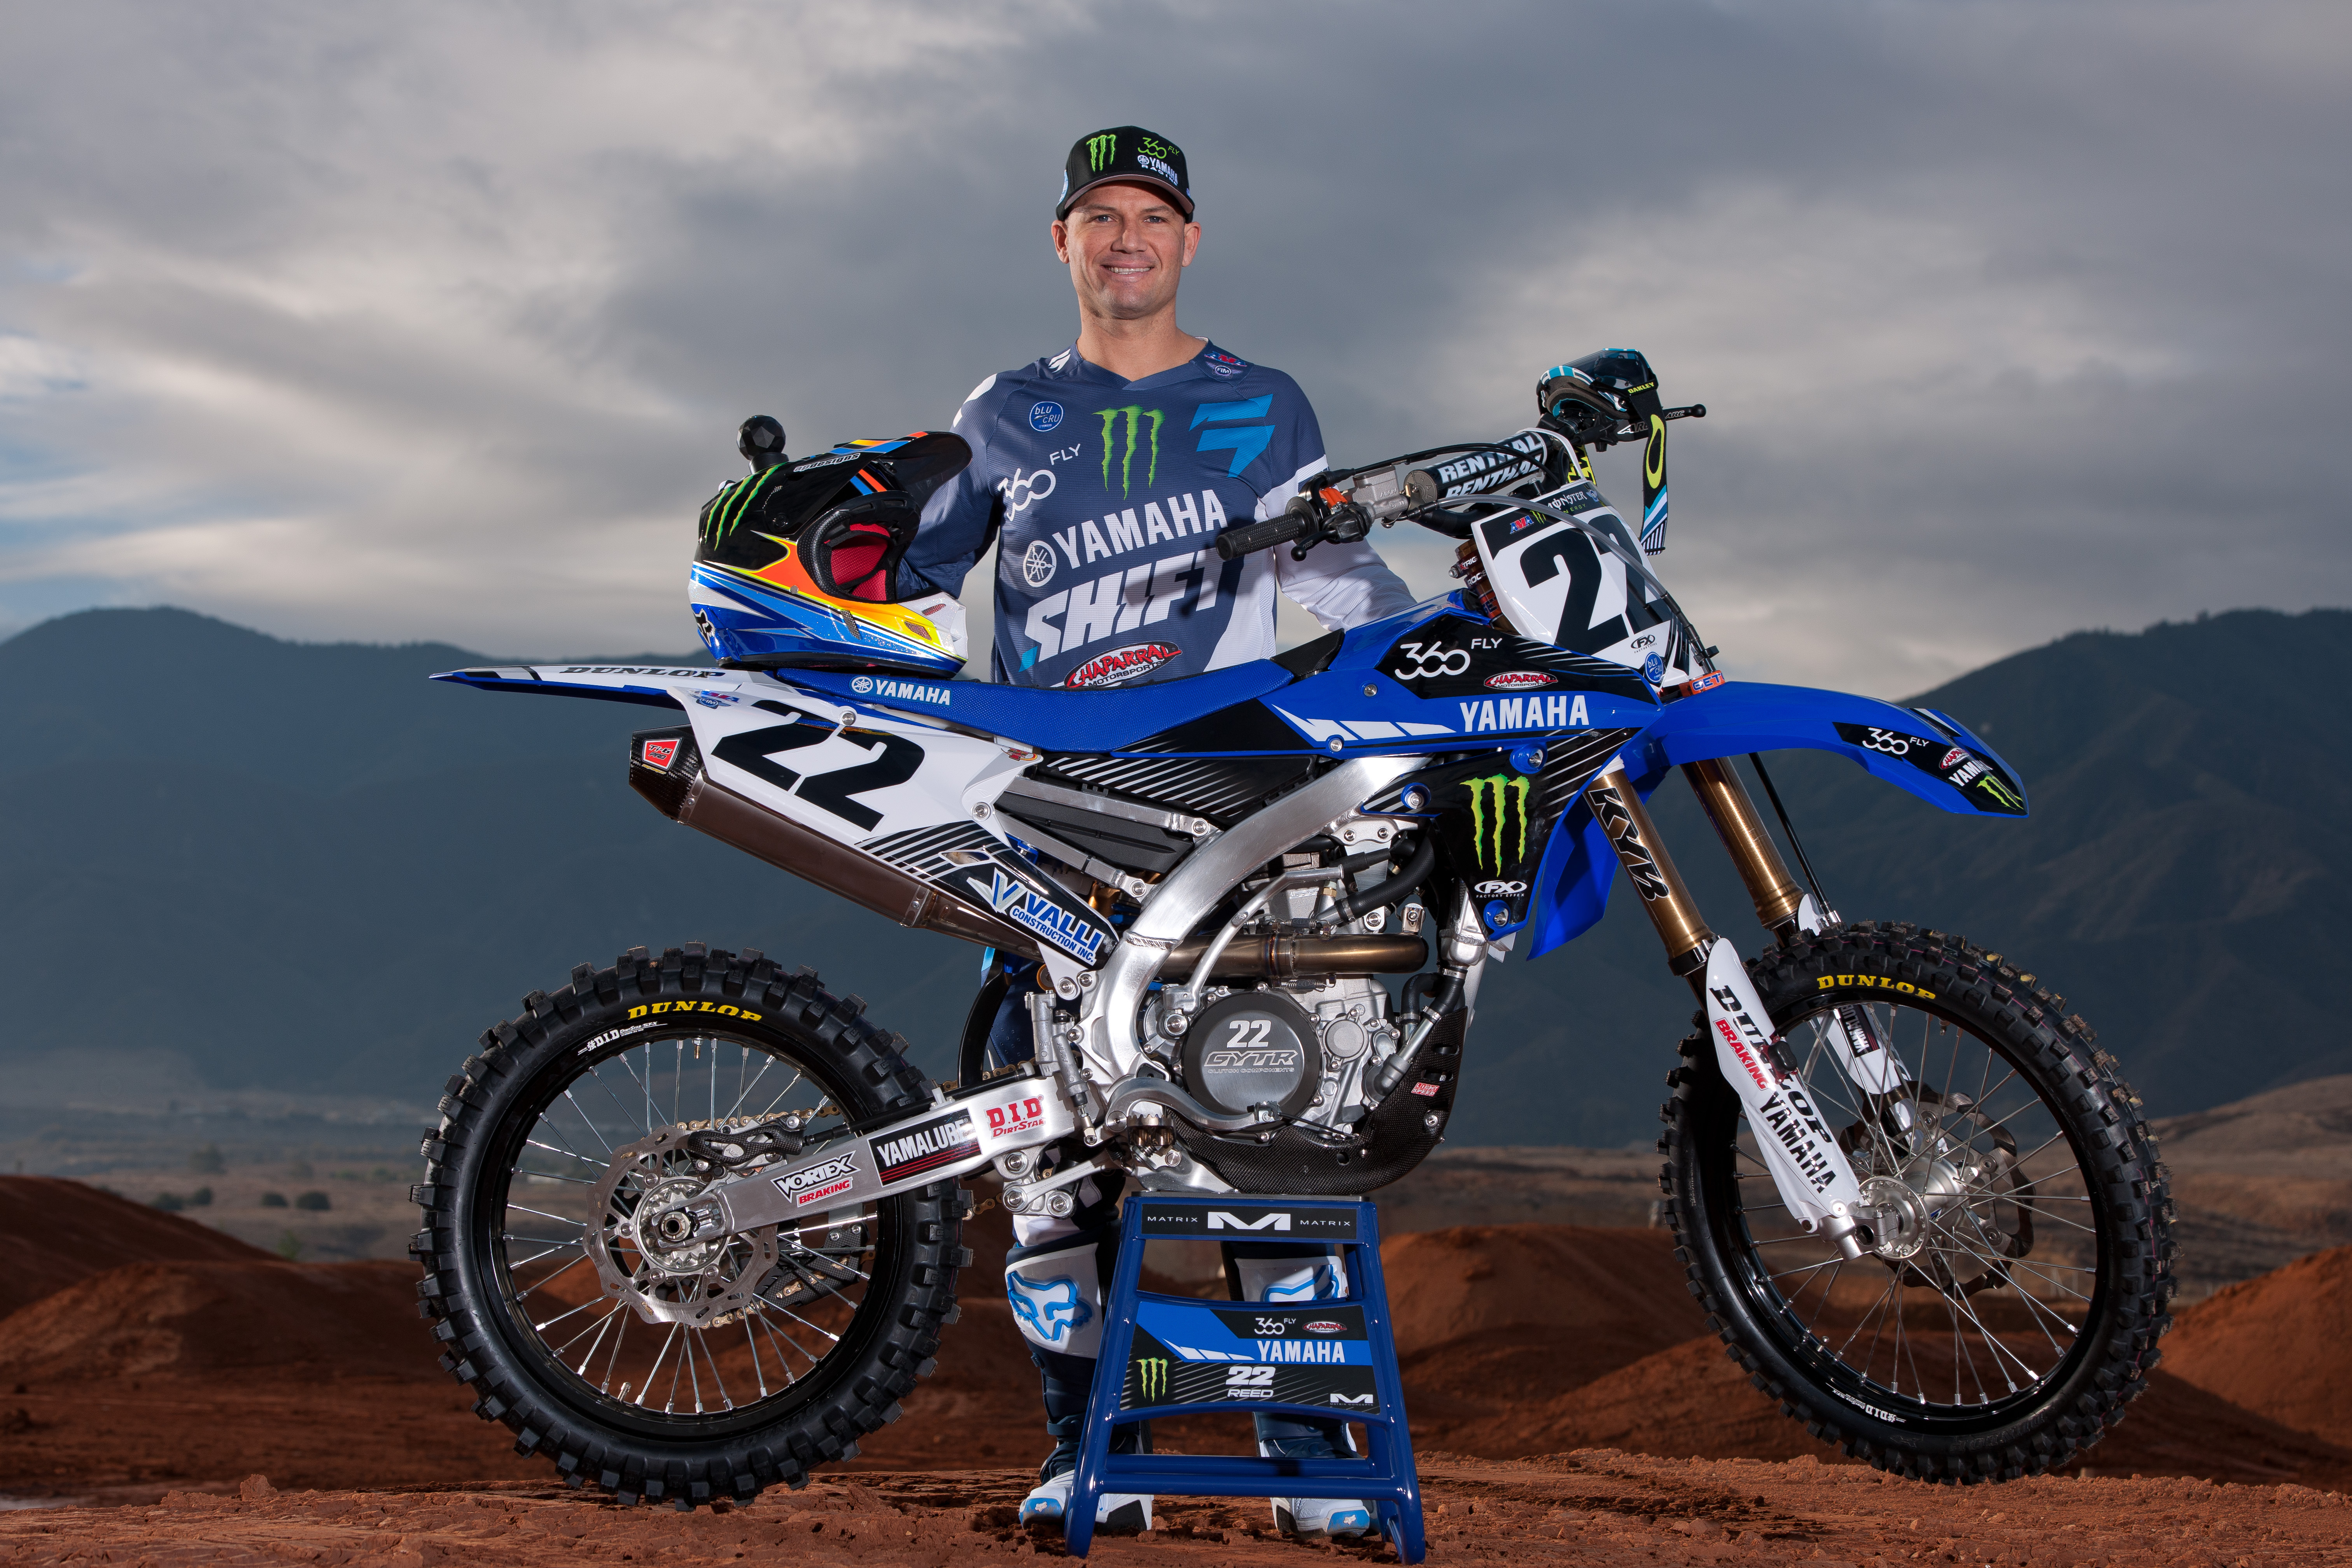 Cypress, CA - January 6, 2016 – Yamaha Motor Corporation, U.S.A., is  excited to re-introduce its factory Supercross team, which is officially  named Monster ...